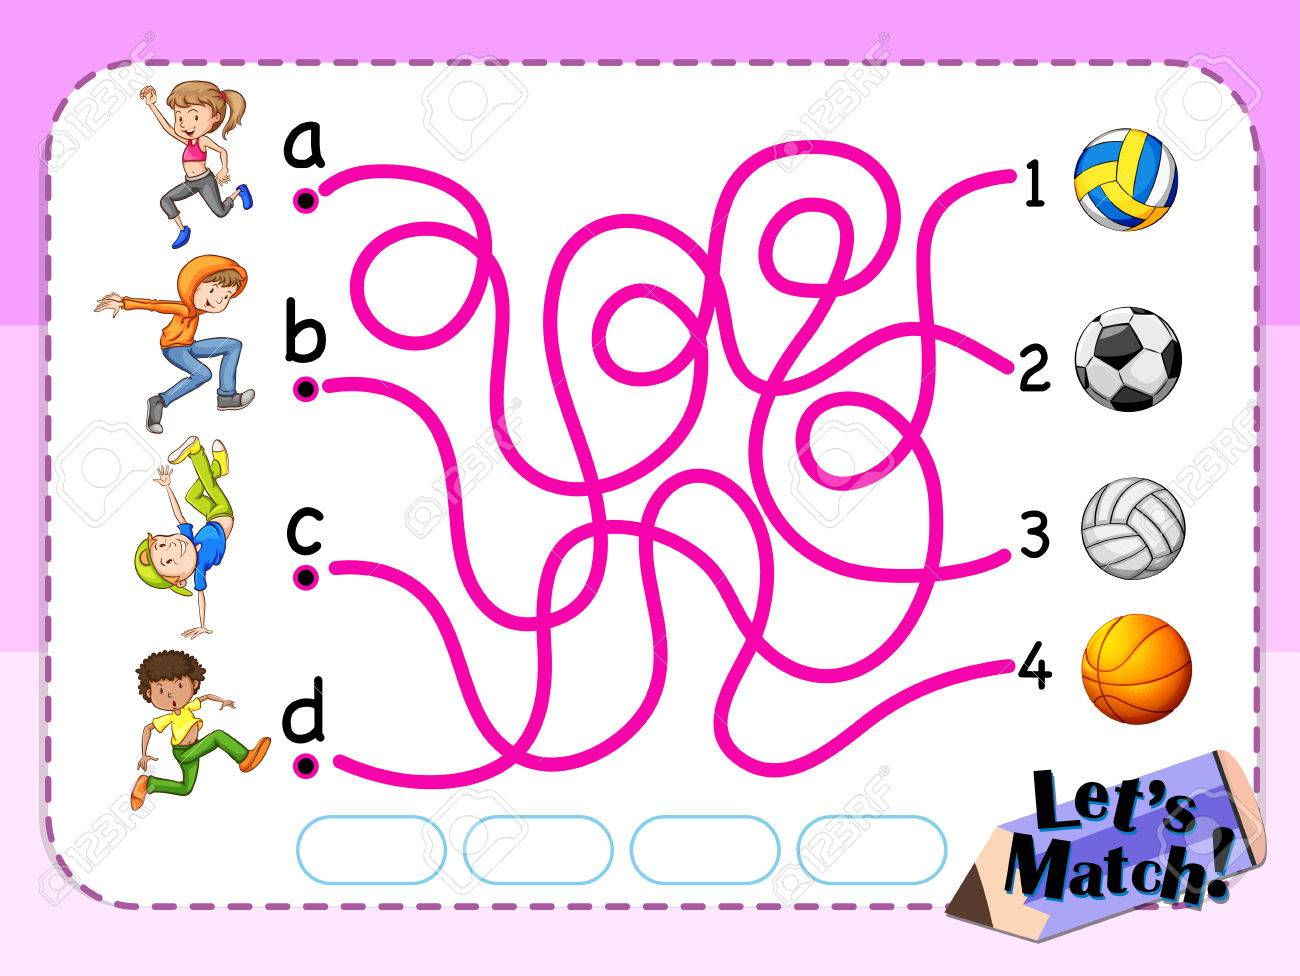 Game template with matching kids and sport illustration - 59361944